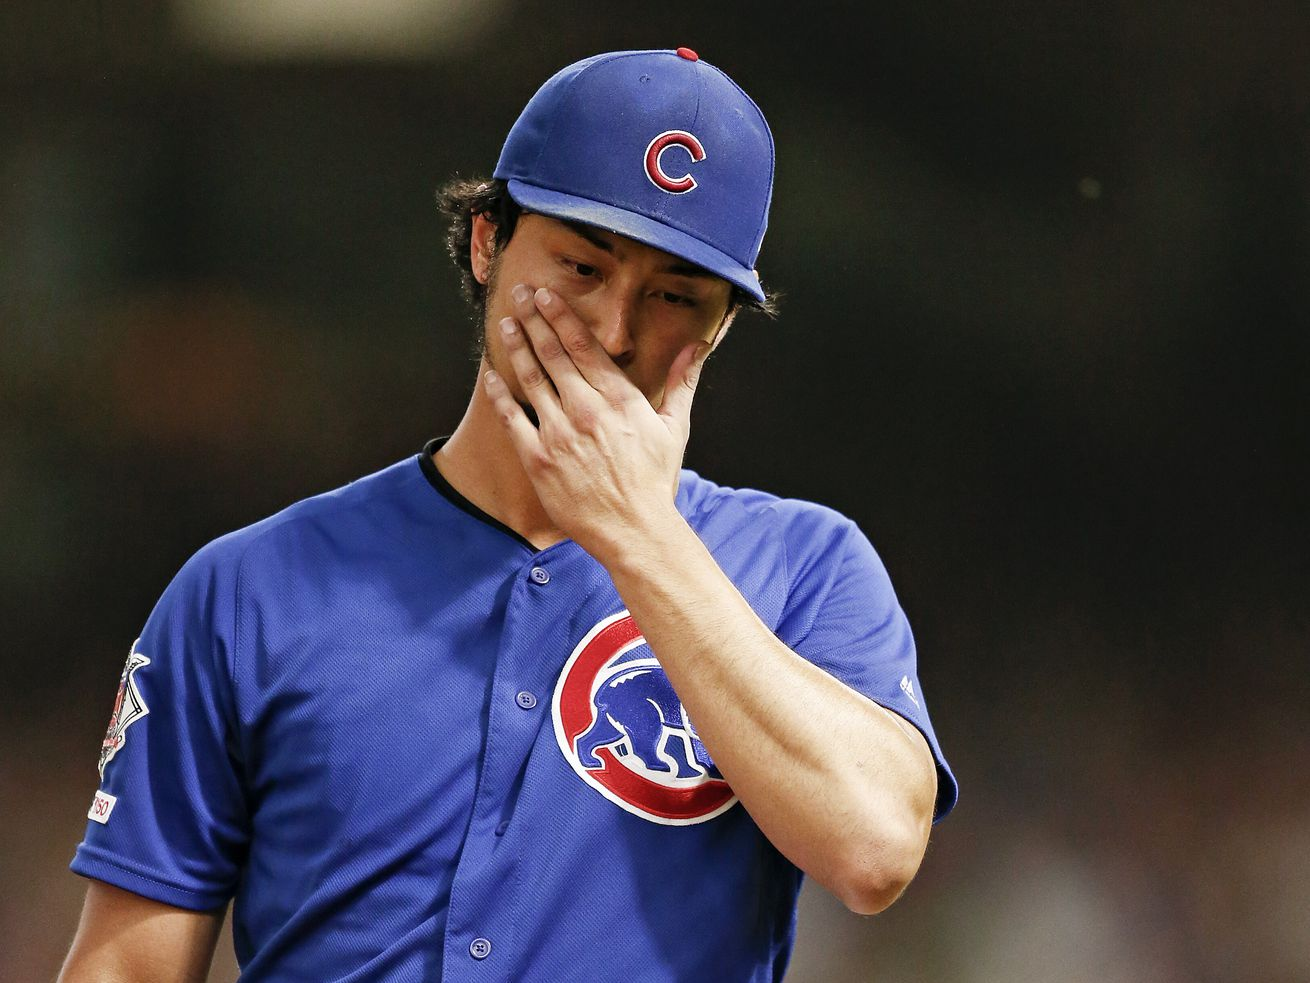 Yu Darvish leaving the mound after the third inning Wednesday night.